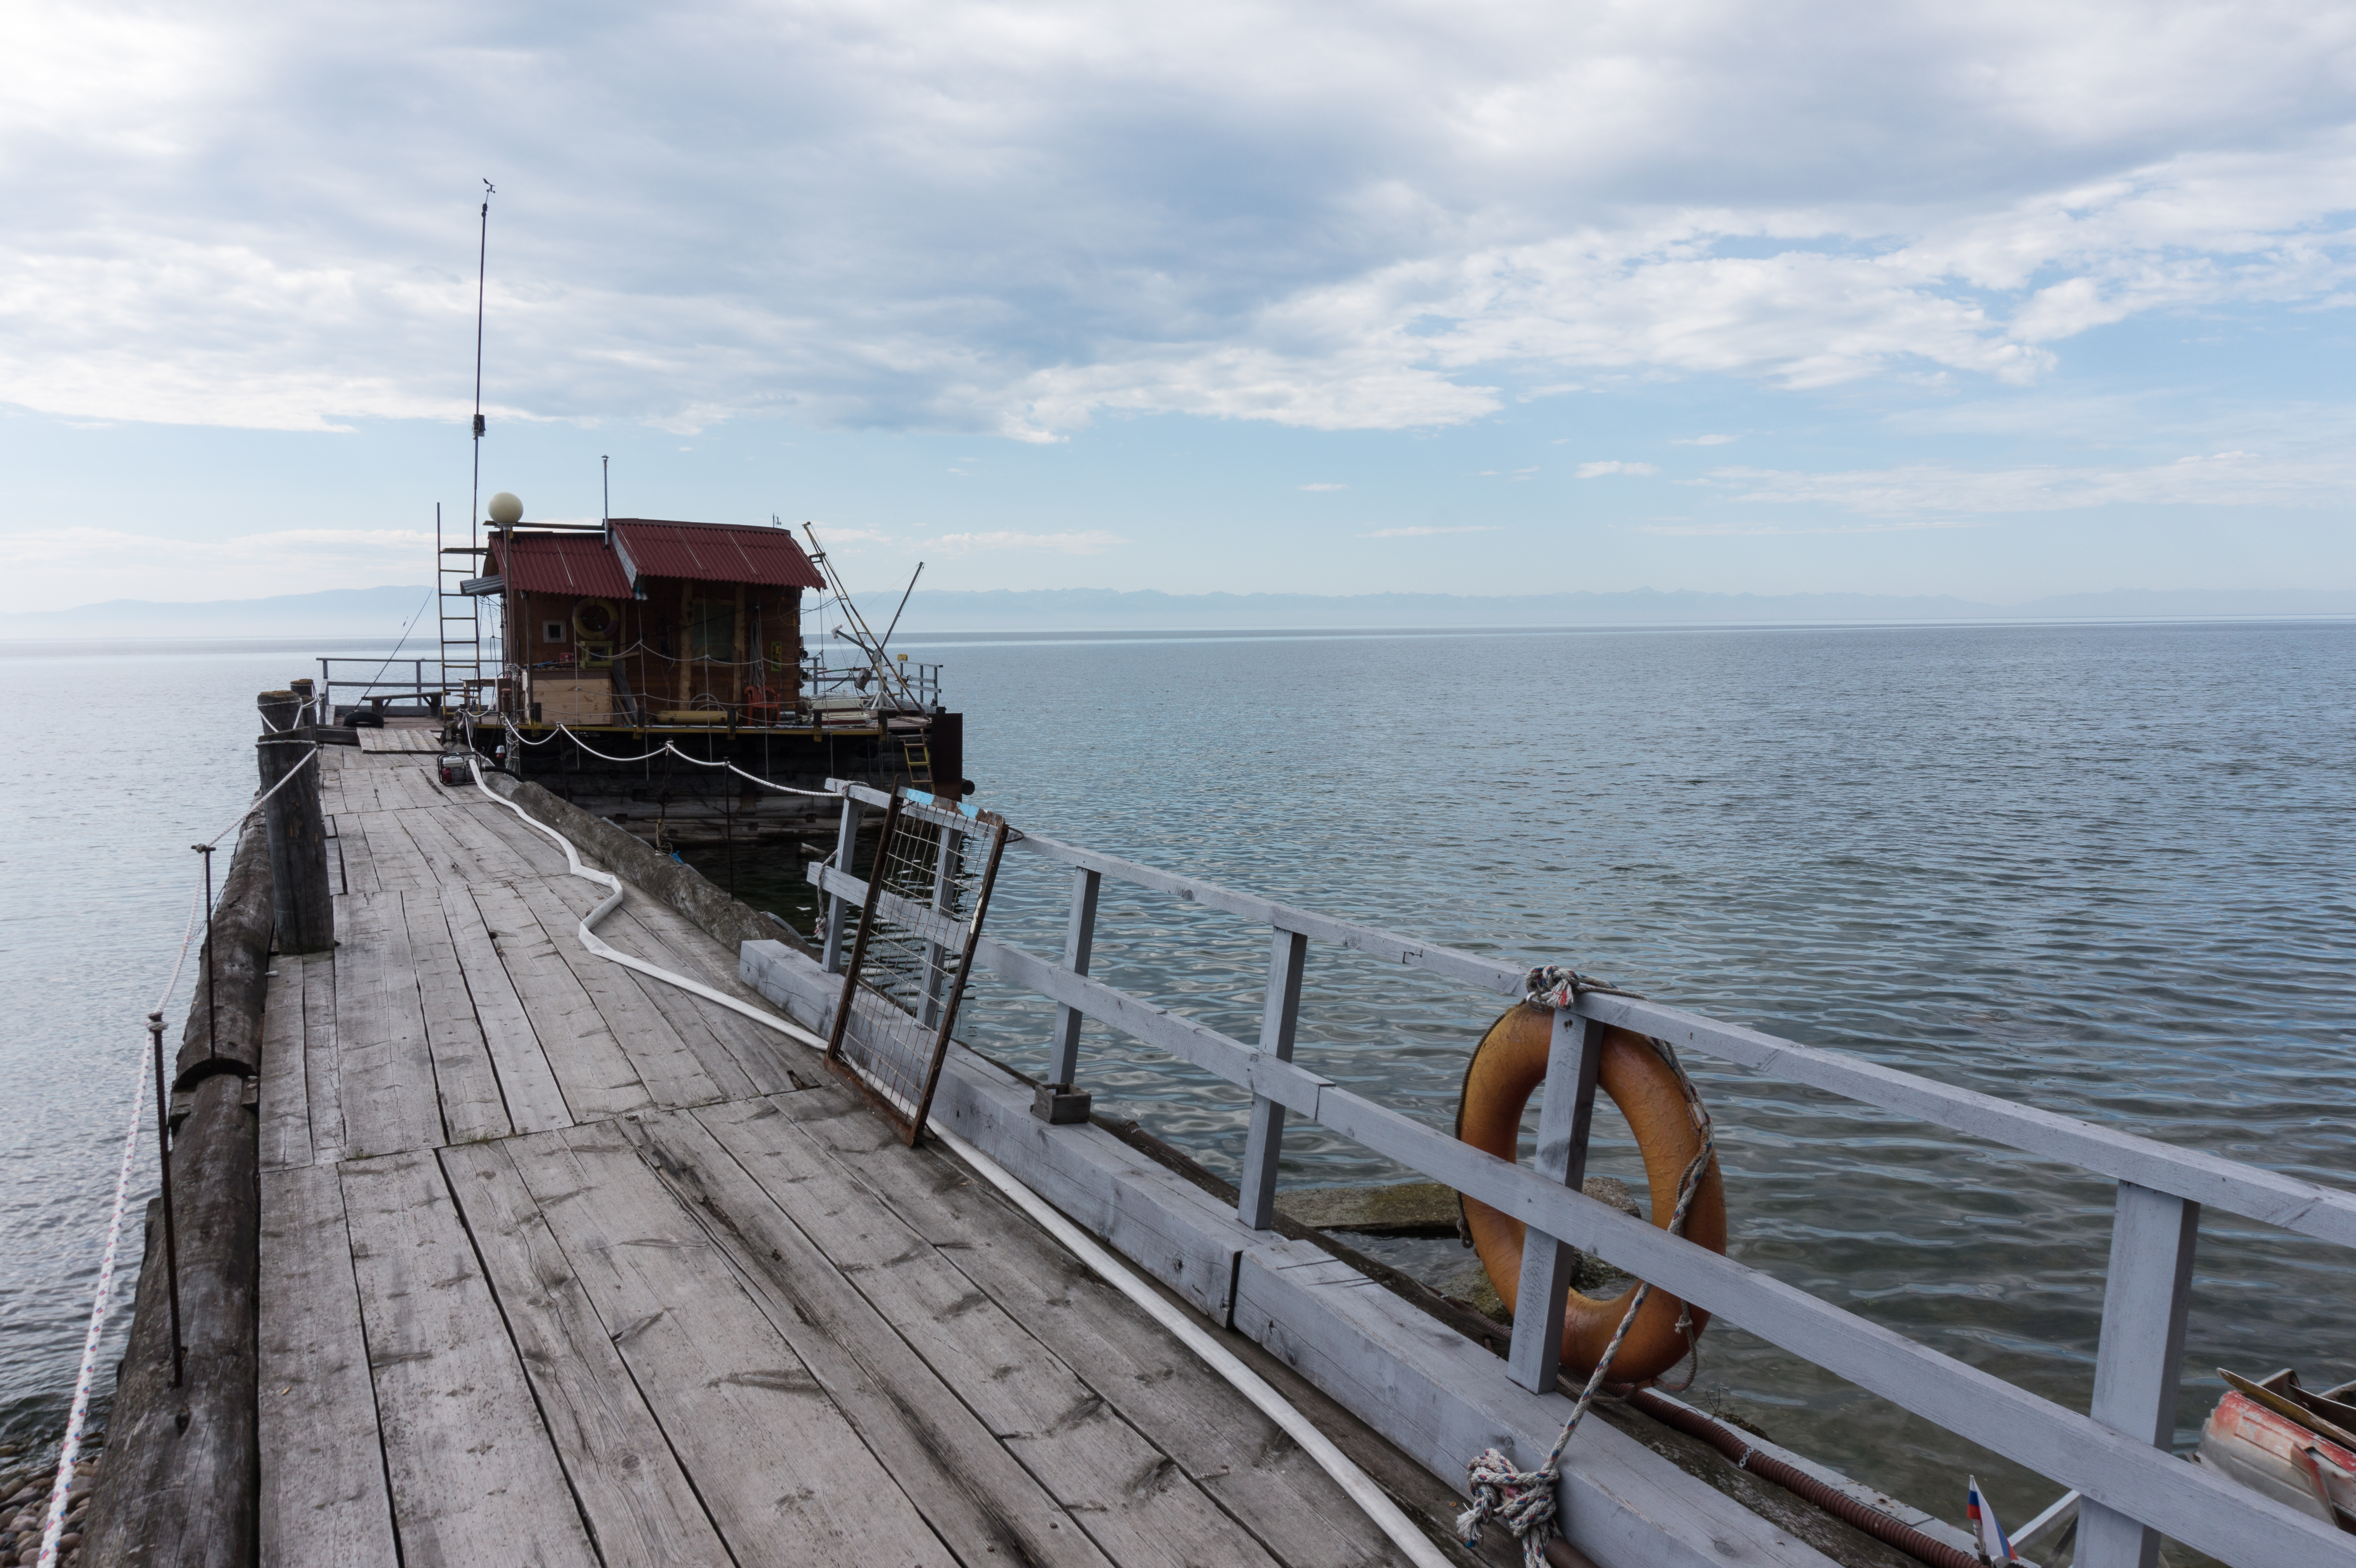 Pier with meteorological station